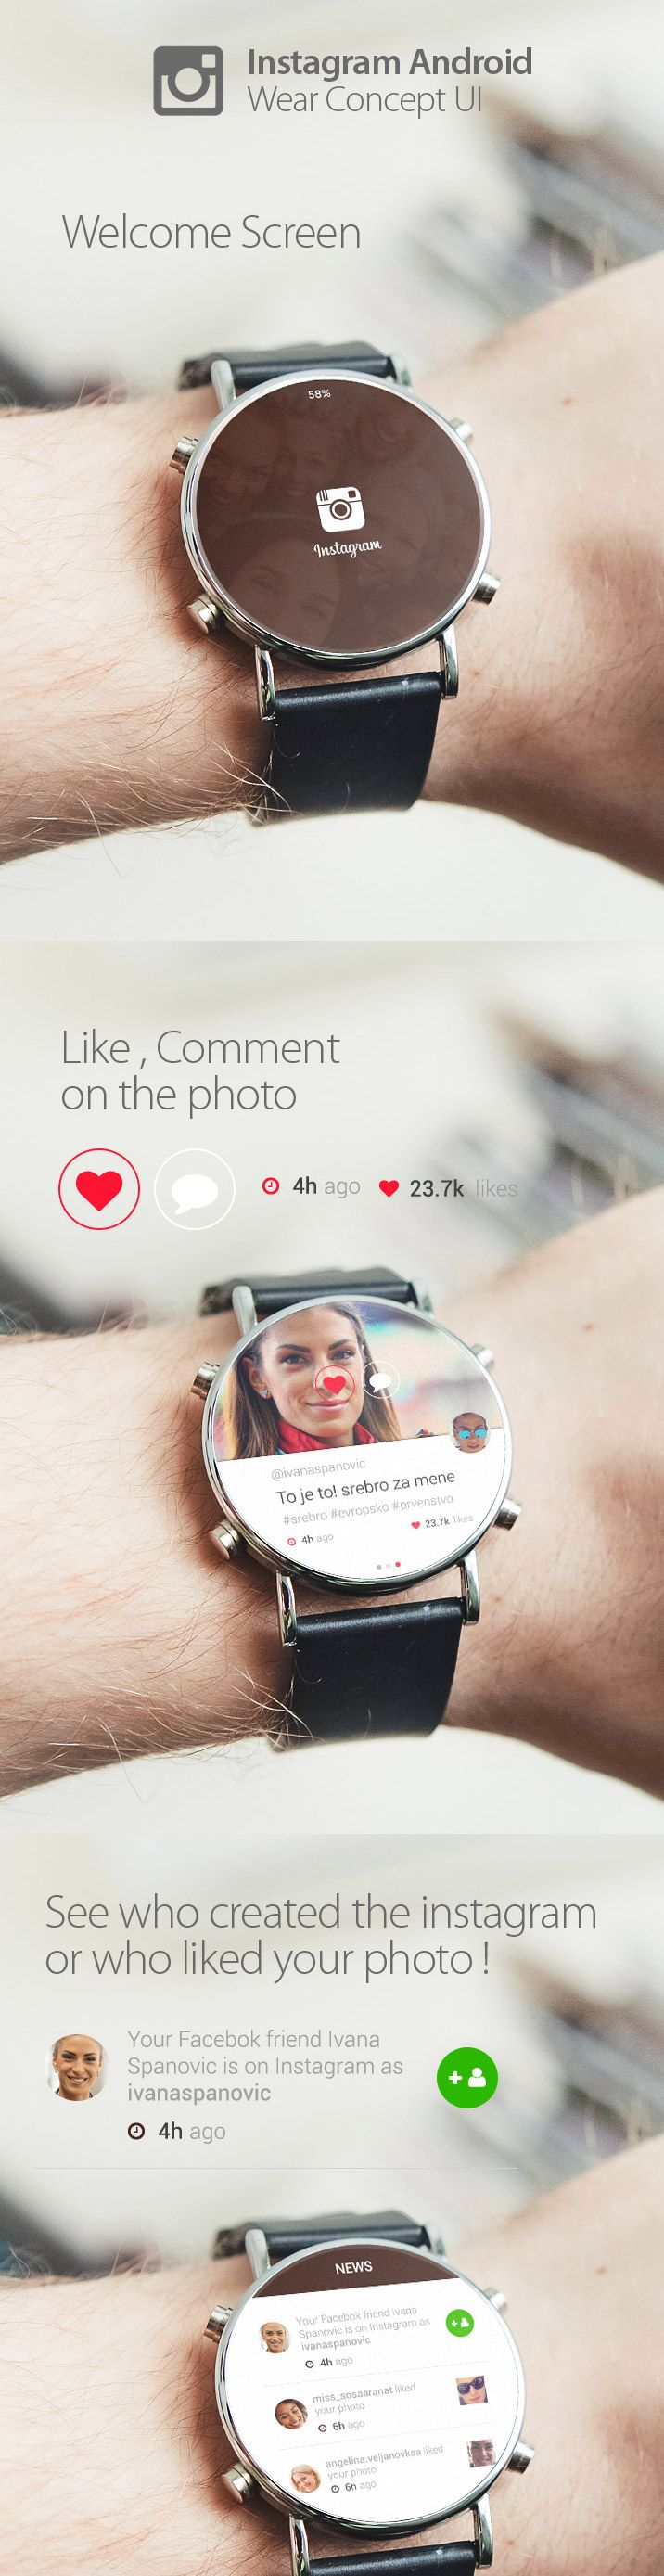 Instagram smartwatch UI http://www.cssdesignawards.com/articles/23-smartwatch-ui-designs-concepts/114/